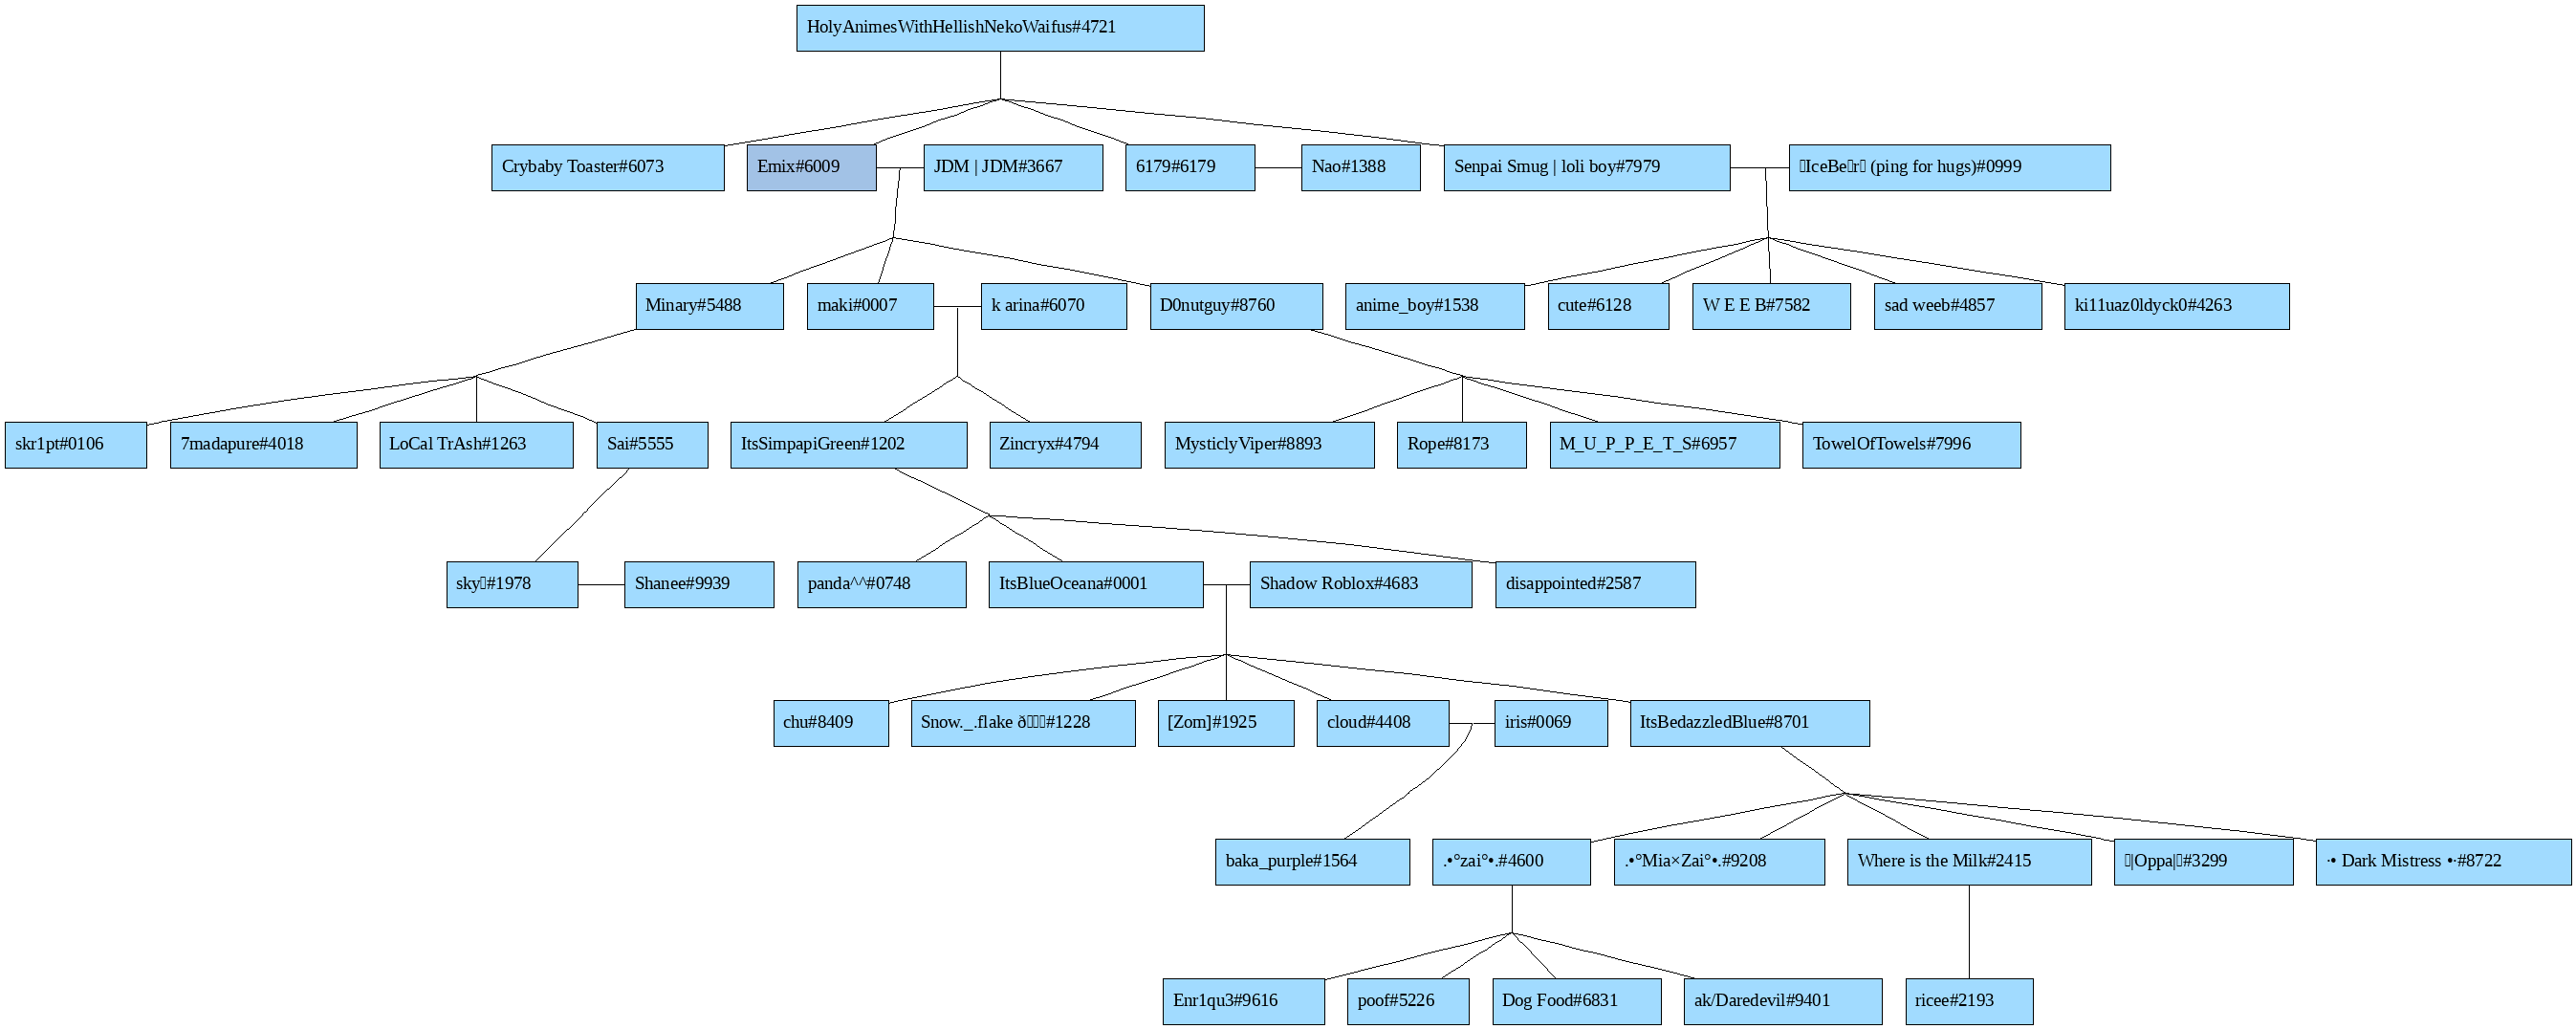 A large family tree composed entirely of Discord users